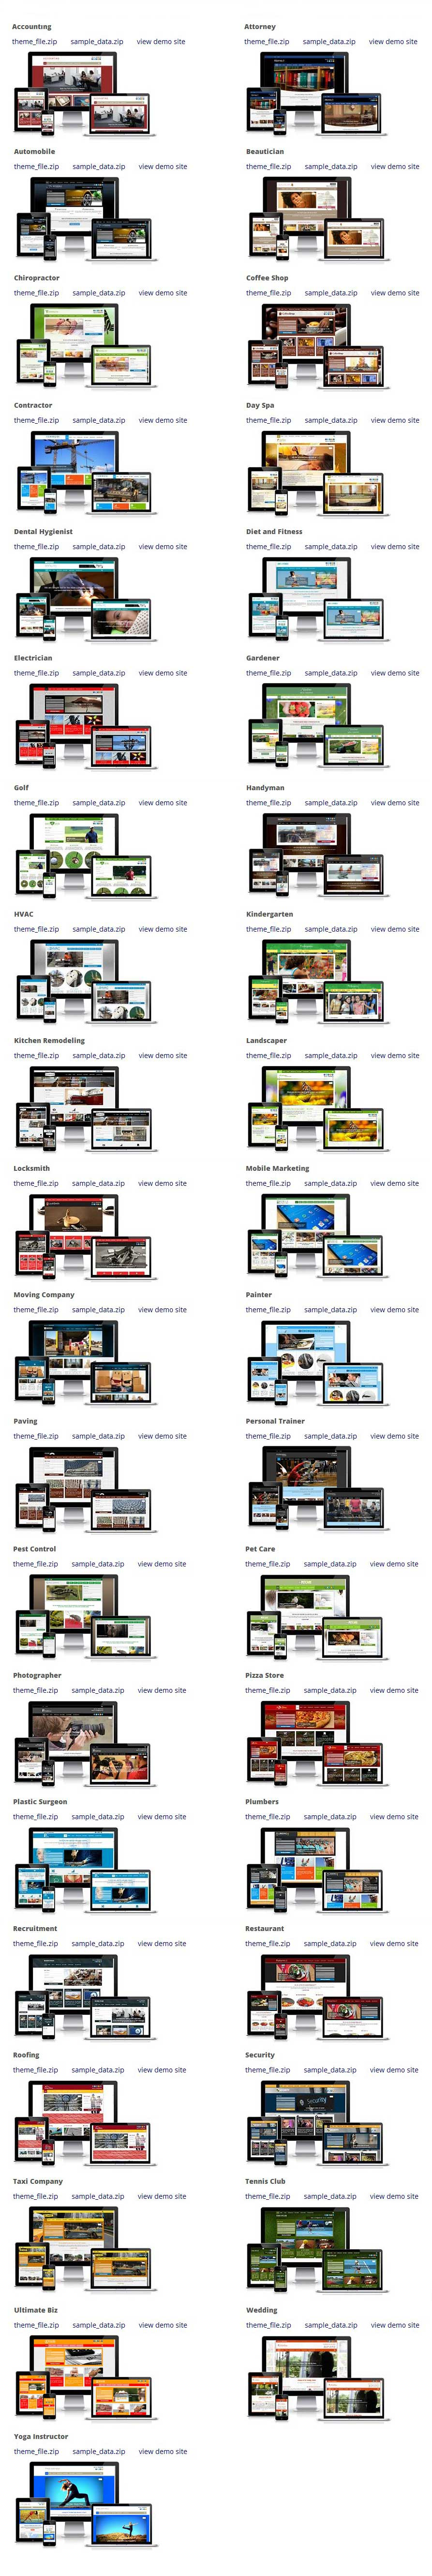 website_themes